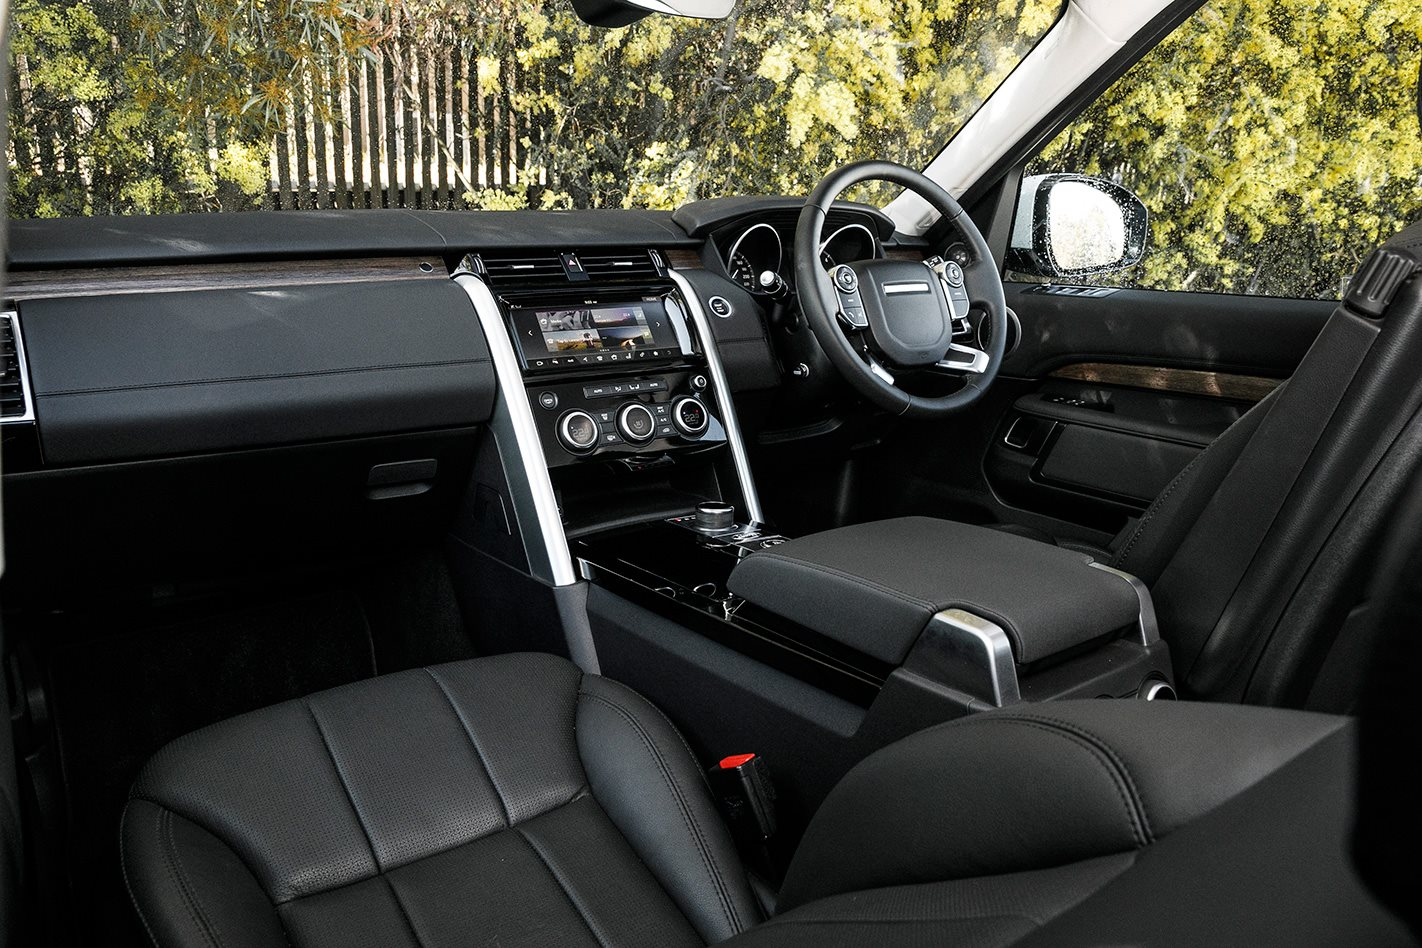 2017 Land Rover Discovery cabin.jpg